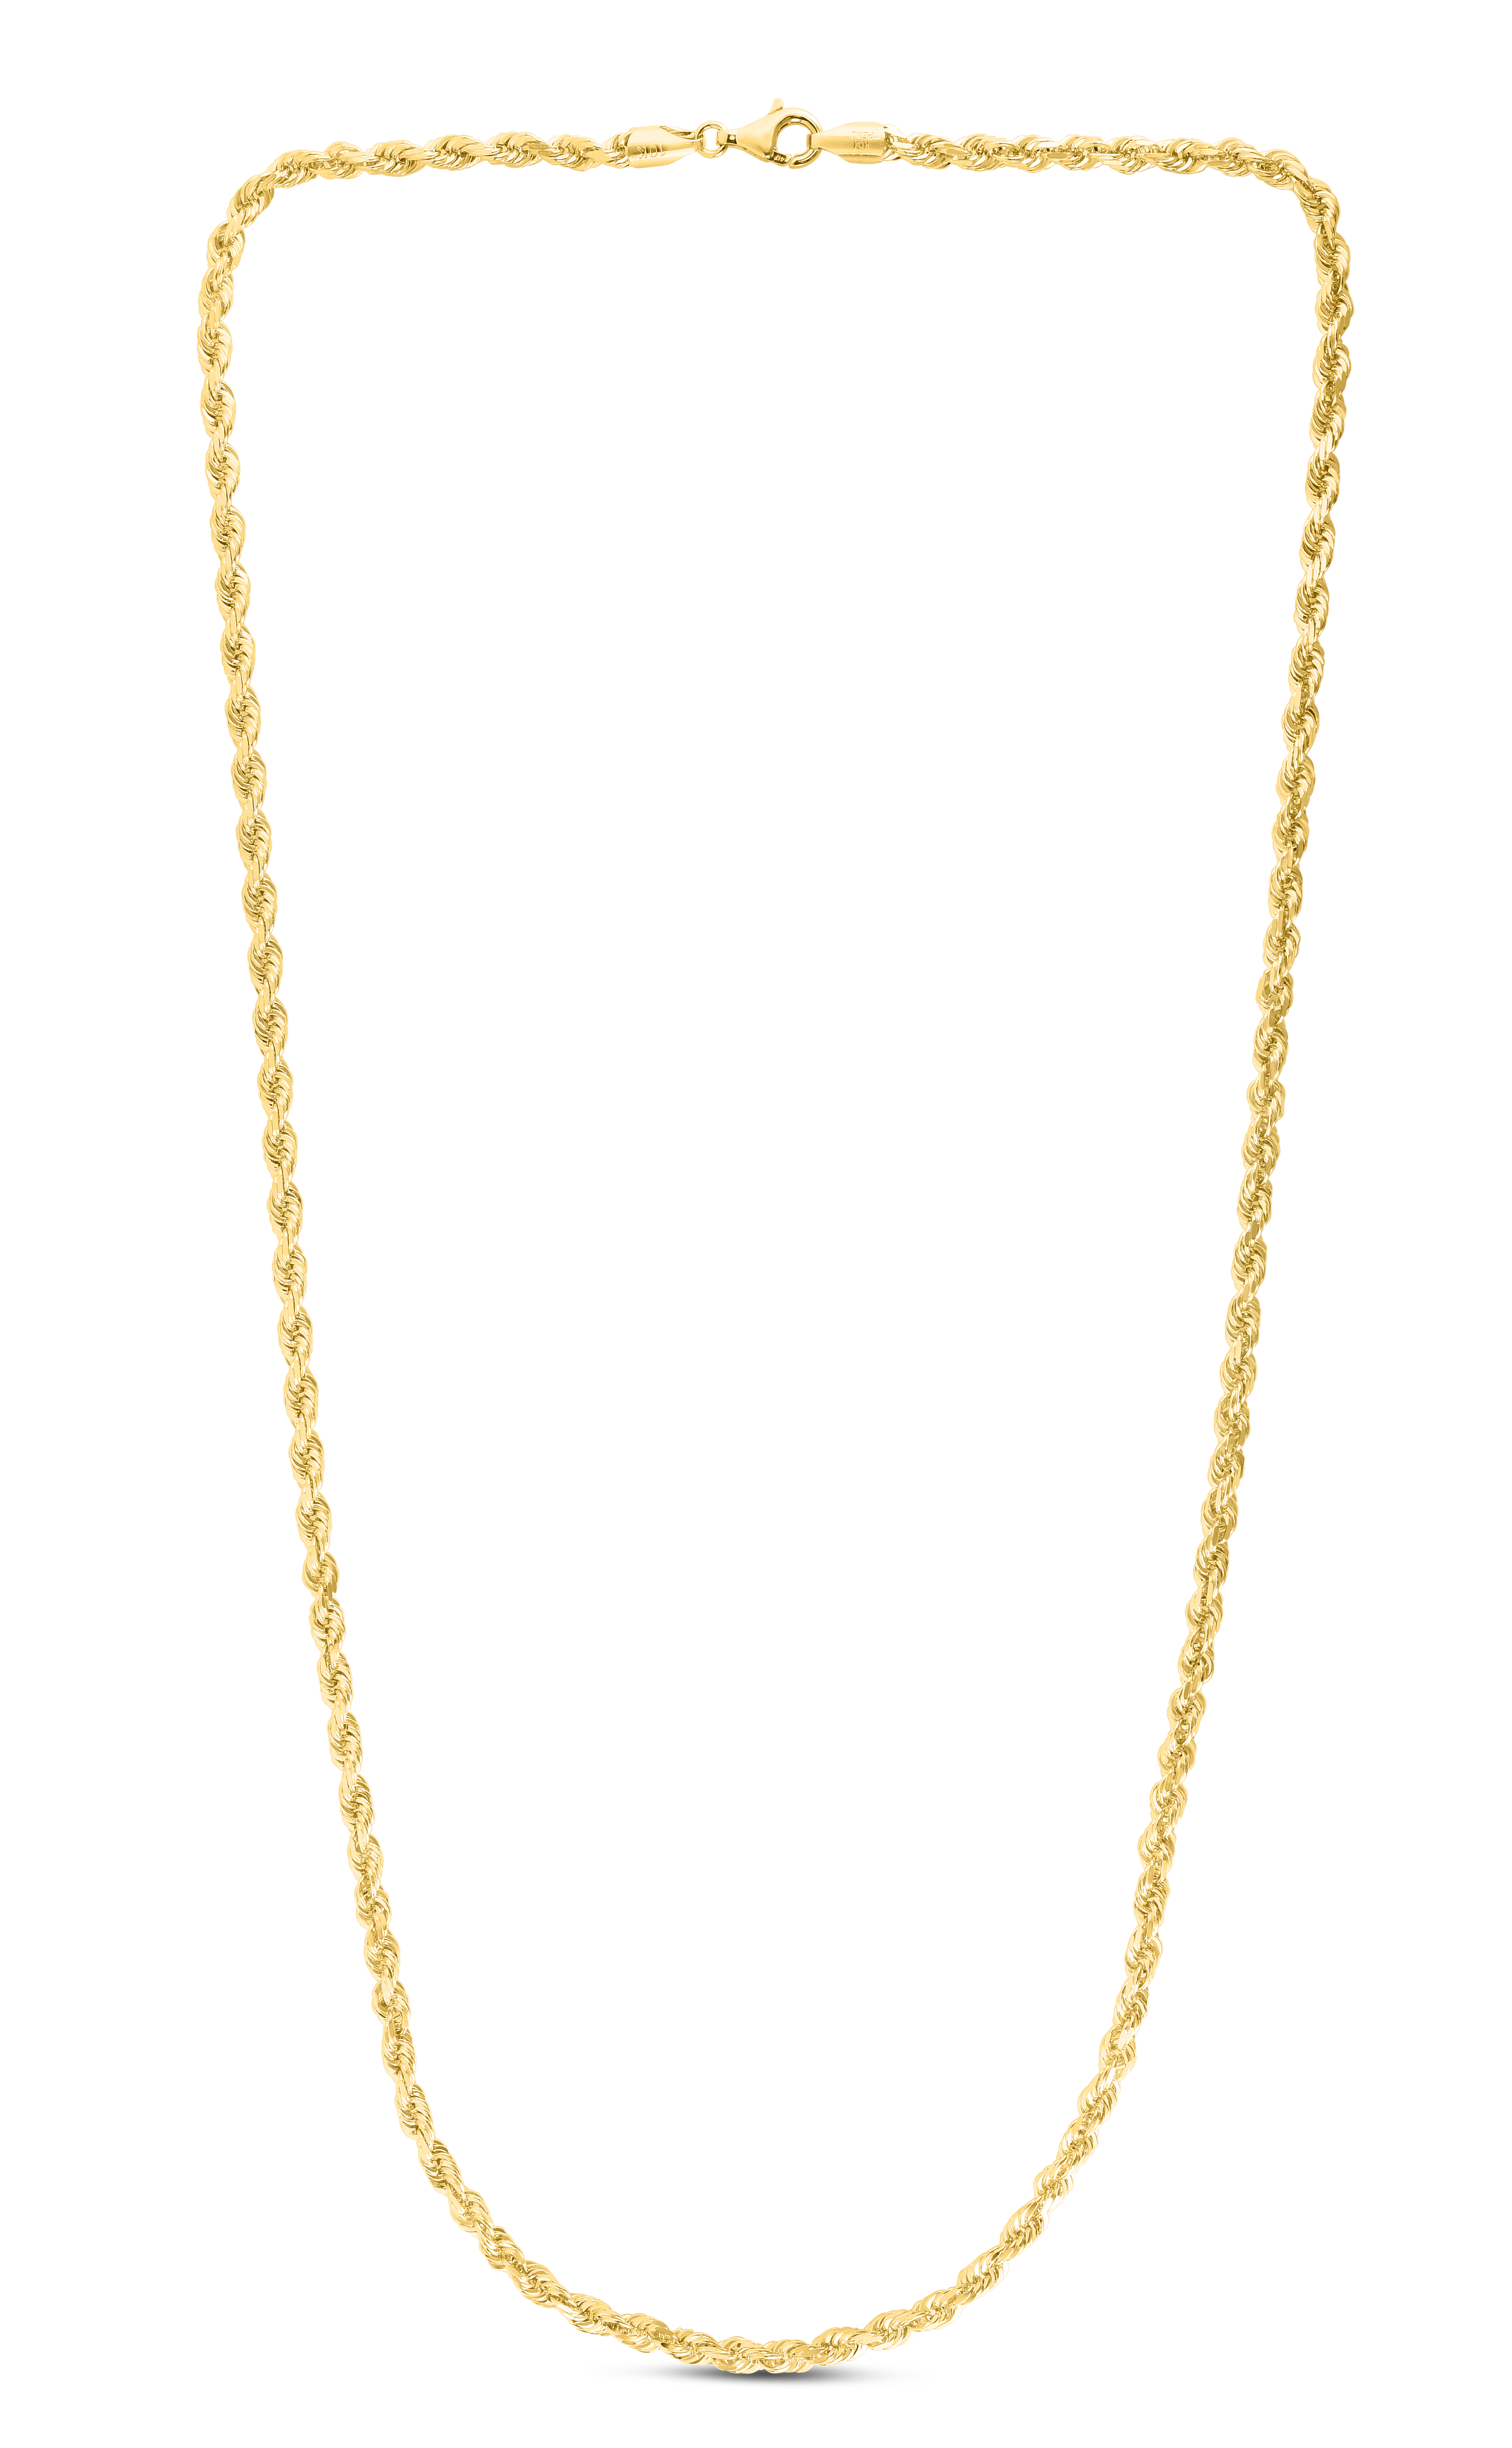 10K 30 inches Yellow Gold 4.0mm Shiny Solid Diamond Cut Royal Rope Chain with Lobster Clasp